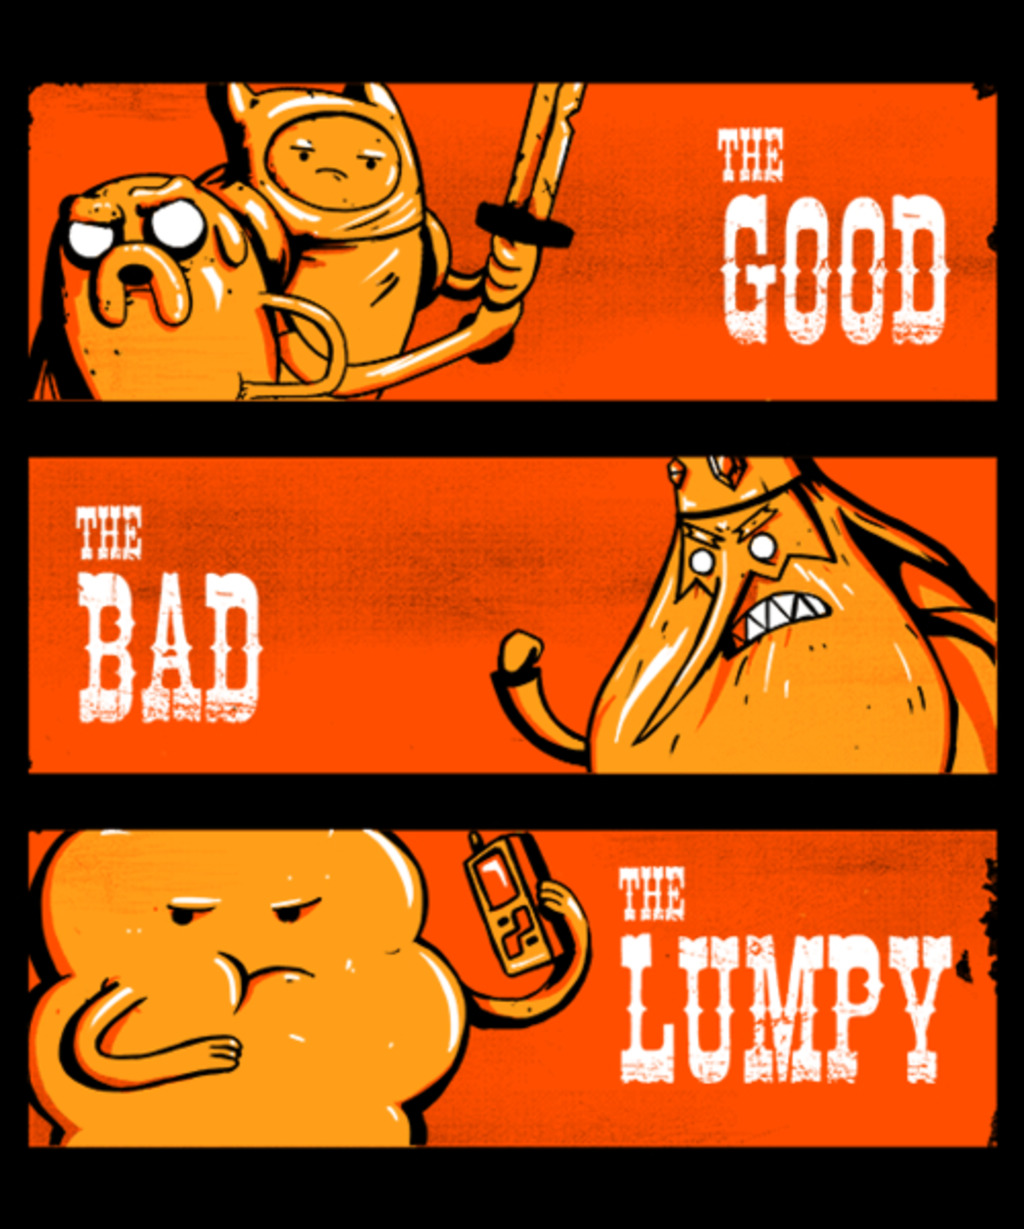 Qwertee: The Good, the Bad and the Lumpy